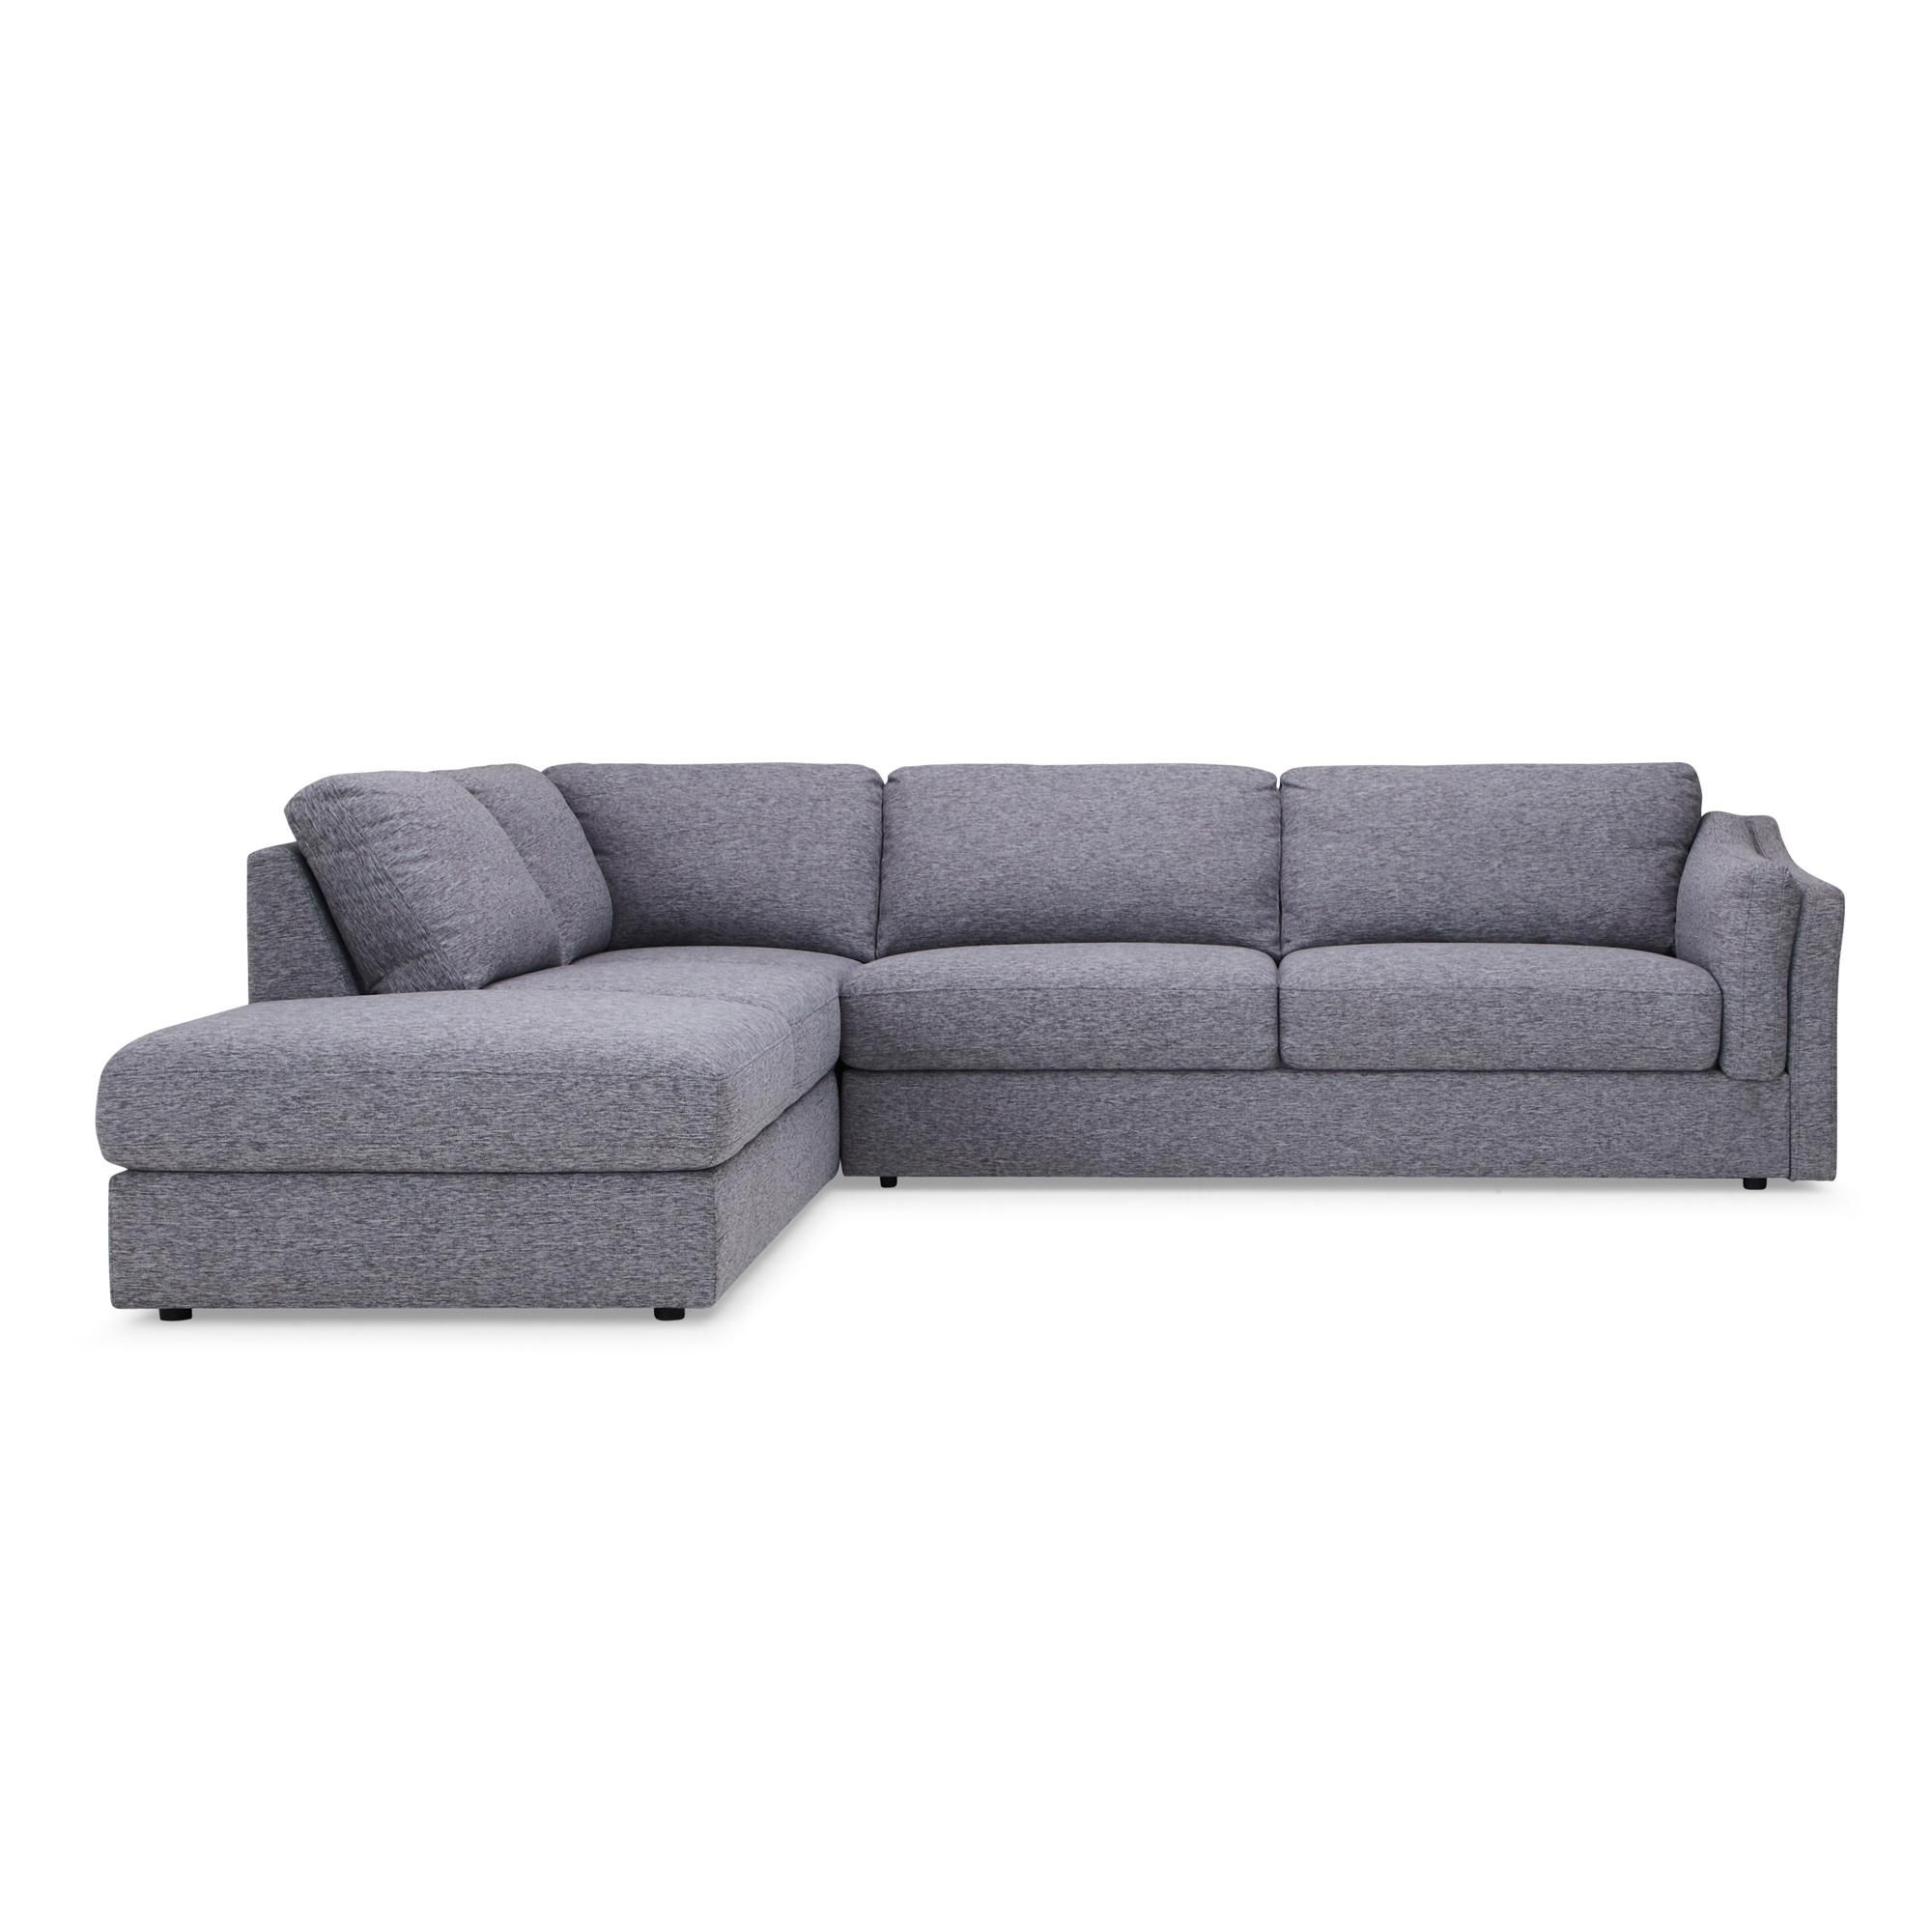 Dunelm Grey Westow Left Hand Corner Sofa Corner Sofa Sofa Bed Sizes